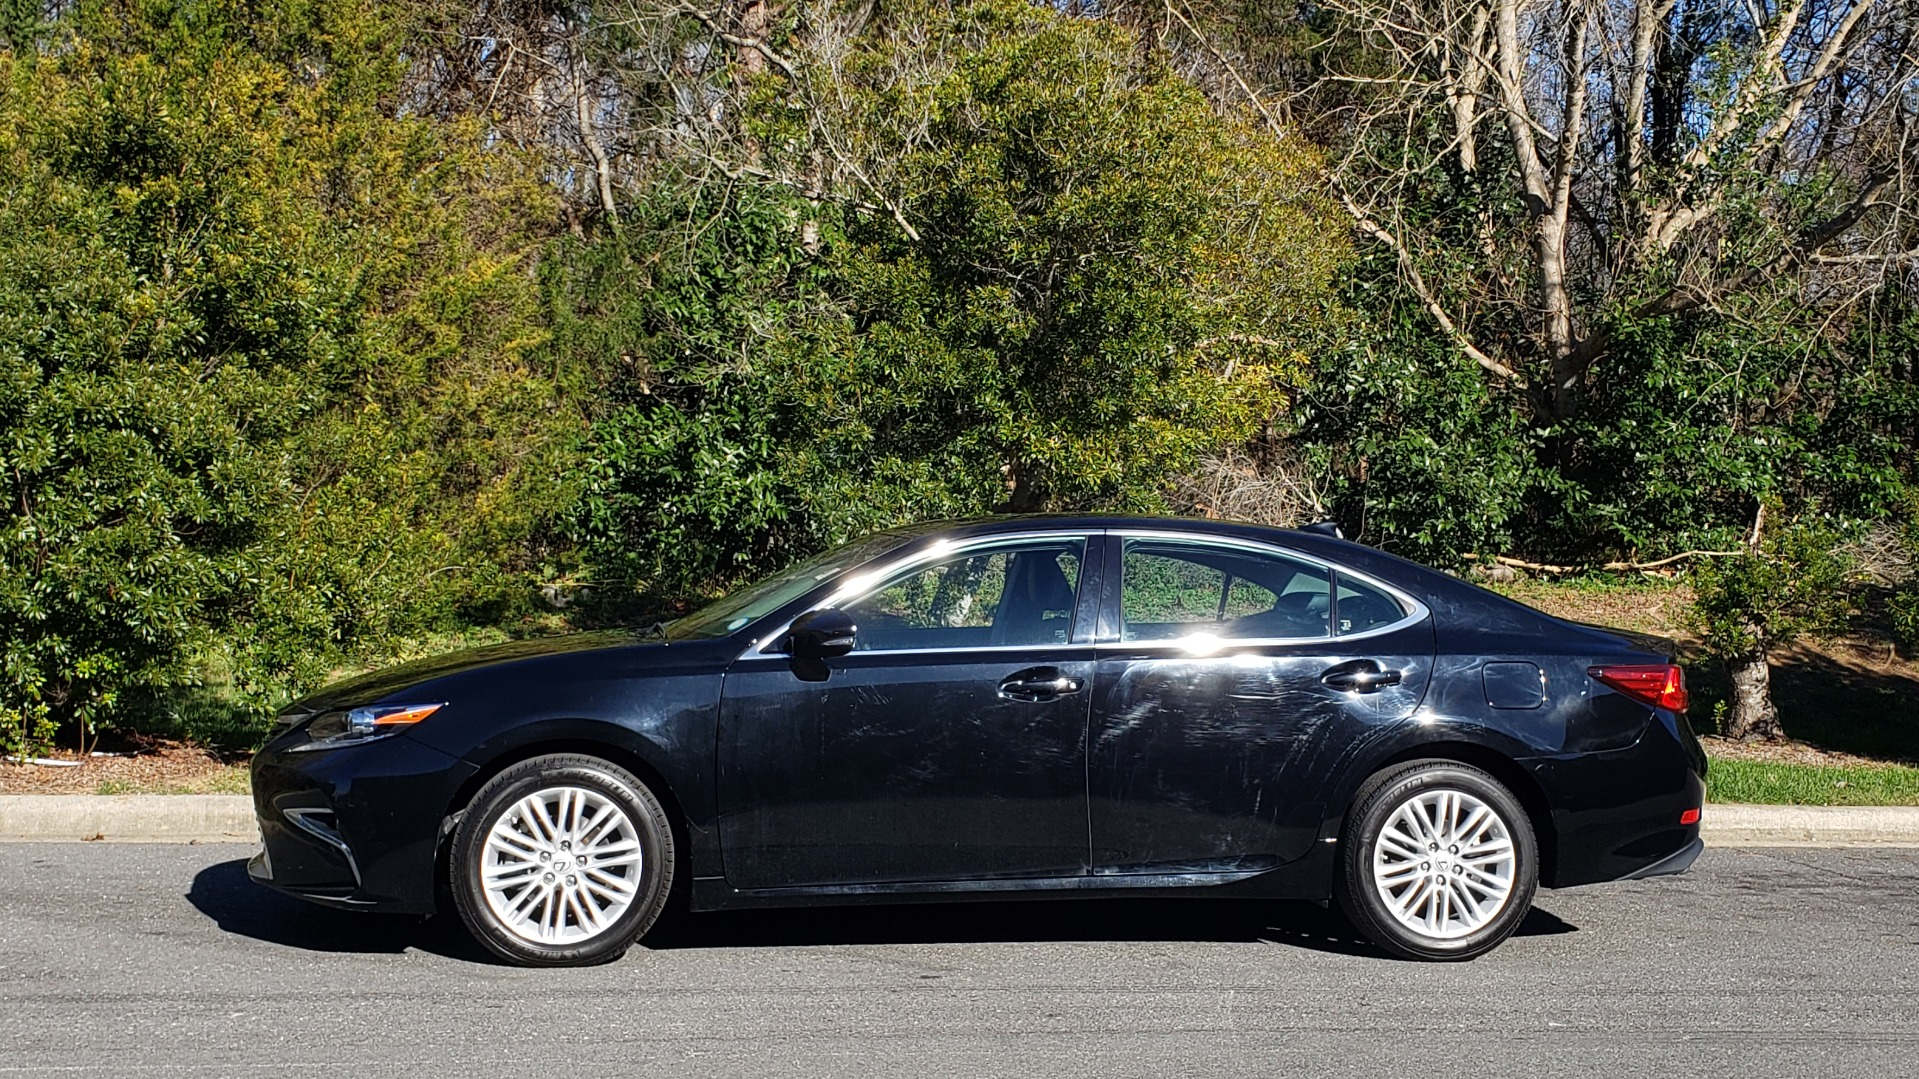 Used 2017 Lexus ES 350 PREMIUM / NAV / SUNROOF / BSM / VENT STS / REARVIEW for sale $24,795 at Formula Imports in Charlotte NC 28227 2